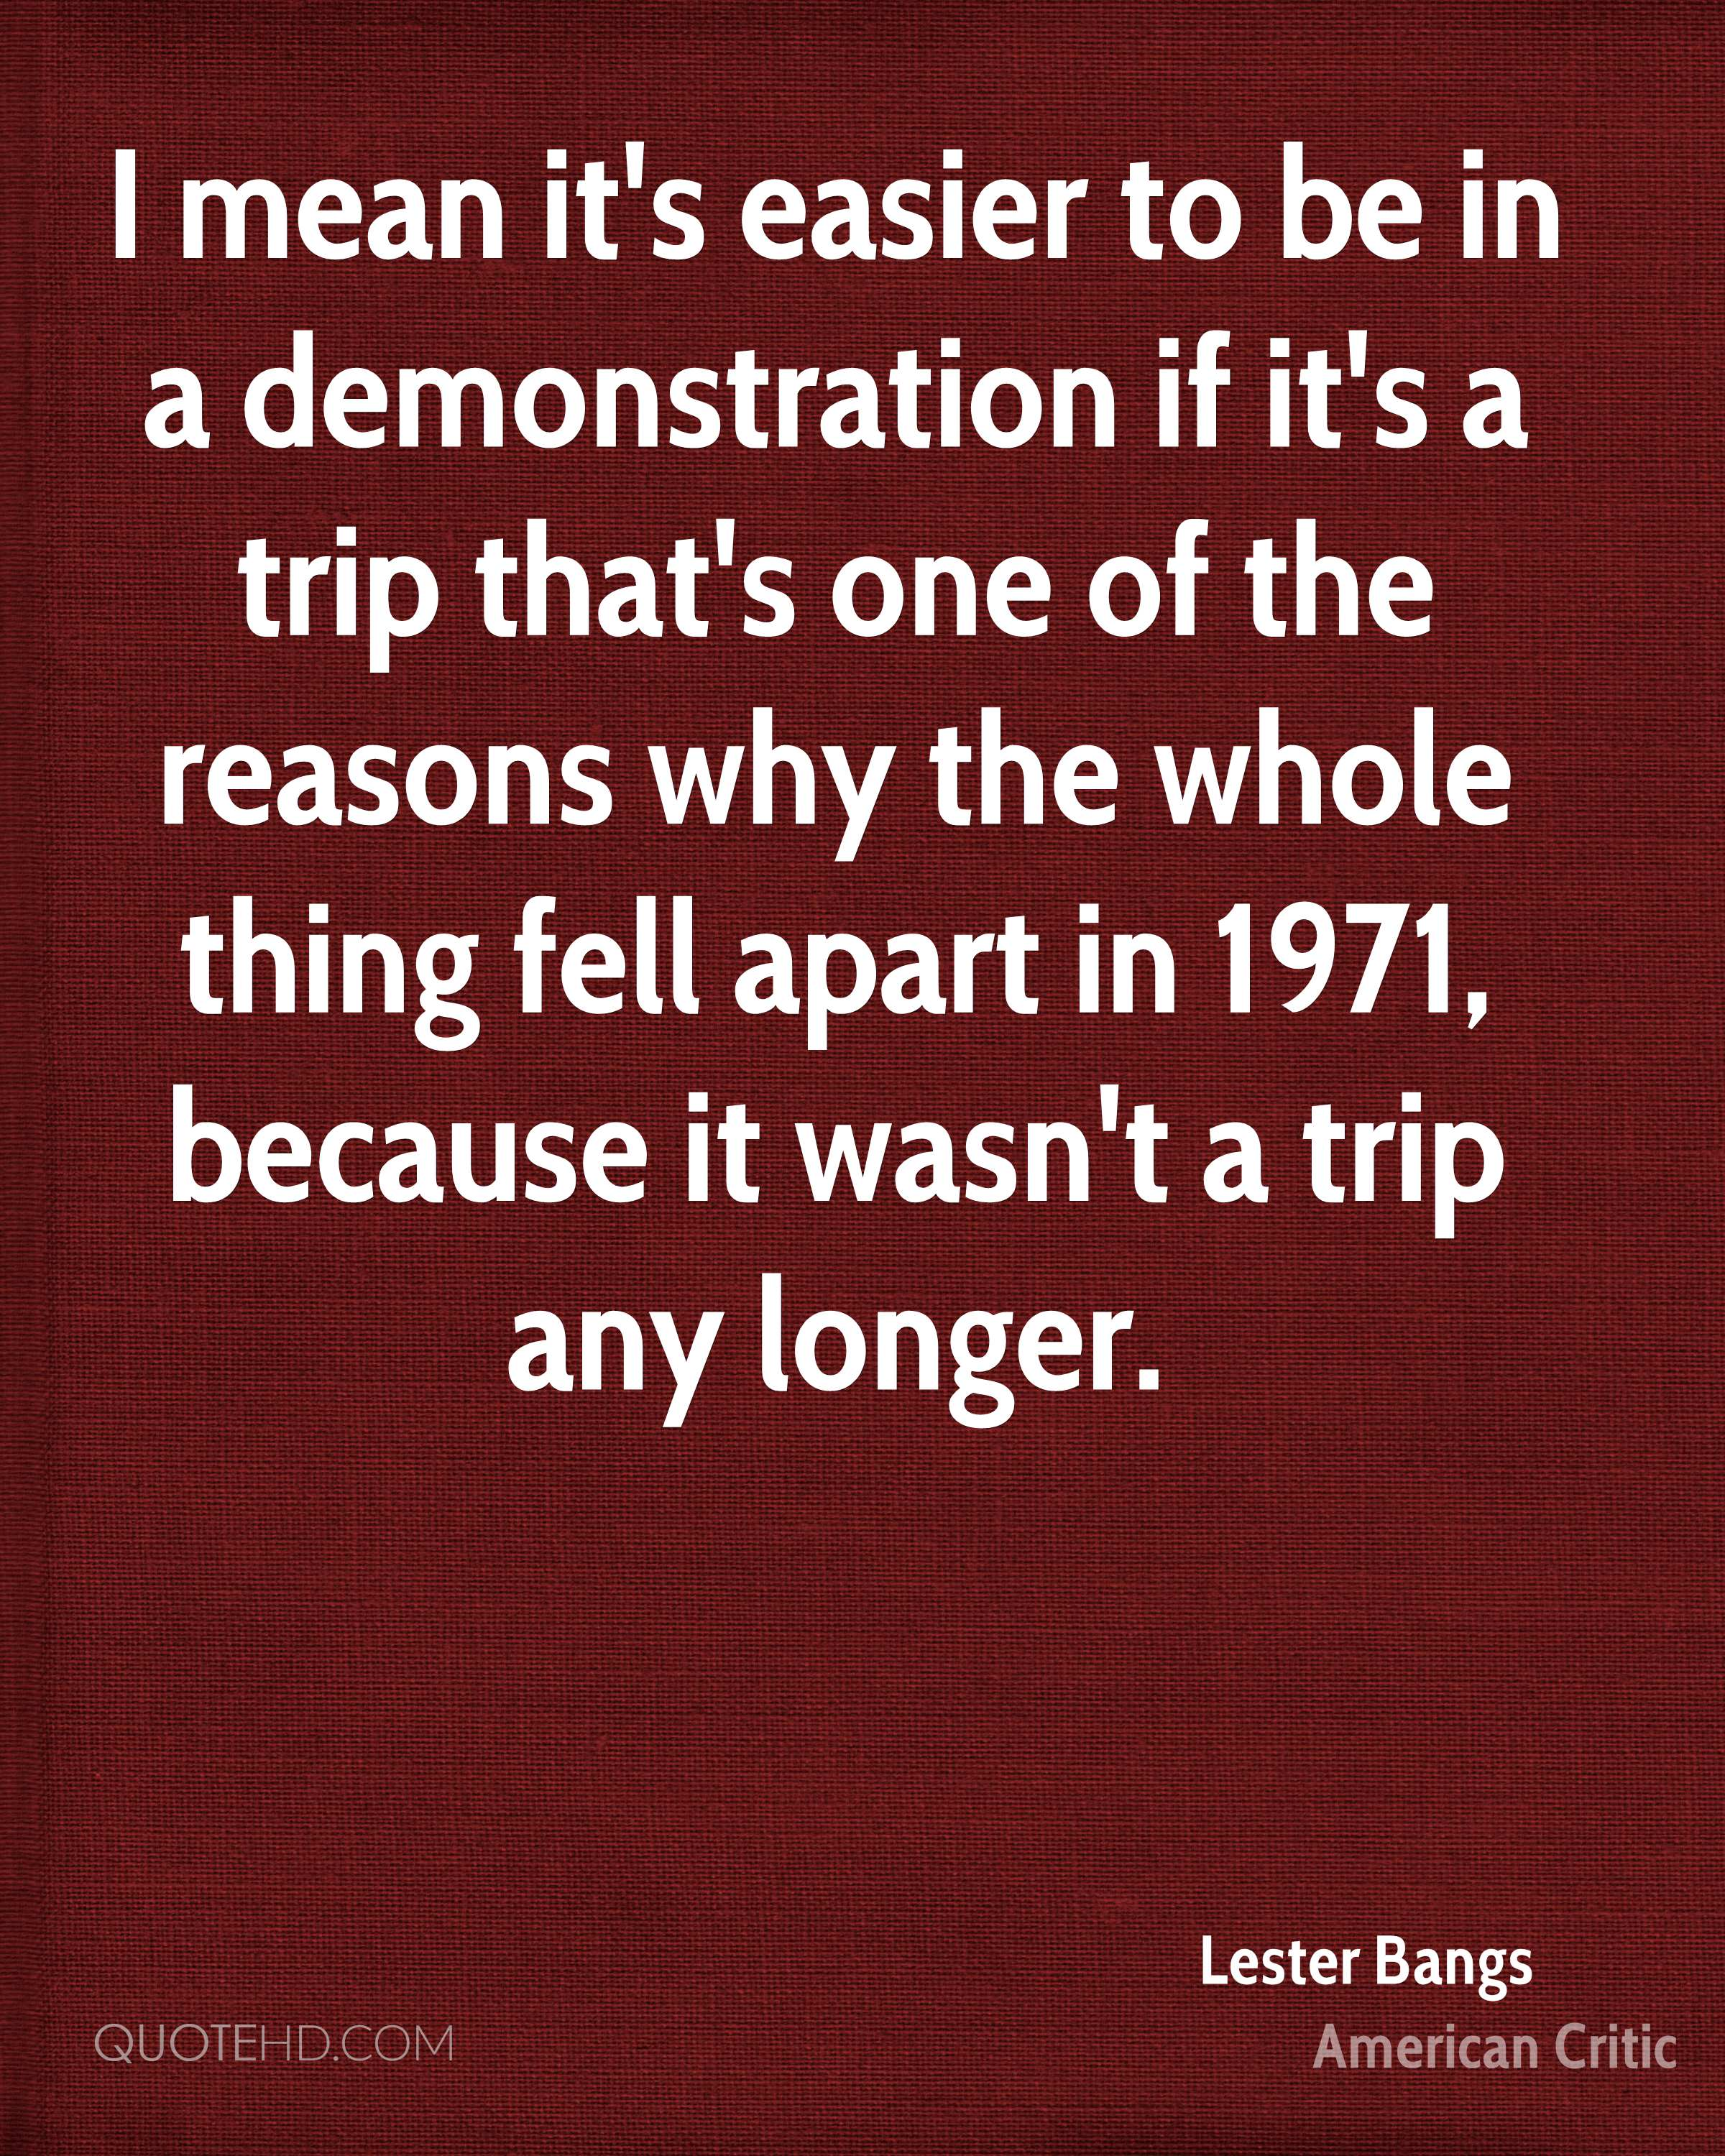 I mean it's easier to be in a demonstration if it's a trip that's one of the reasons why the whole thing fell apart in 1971, because it wasn't a trip any longer.